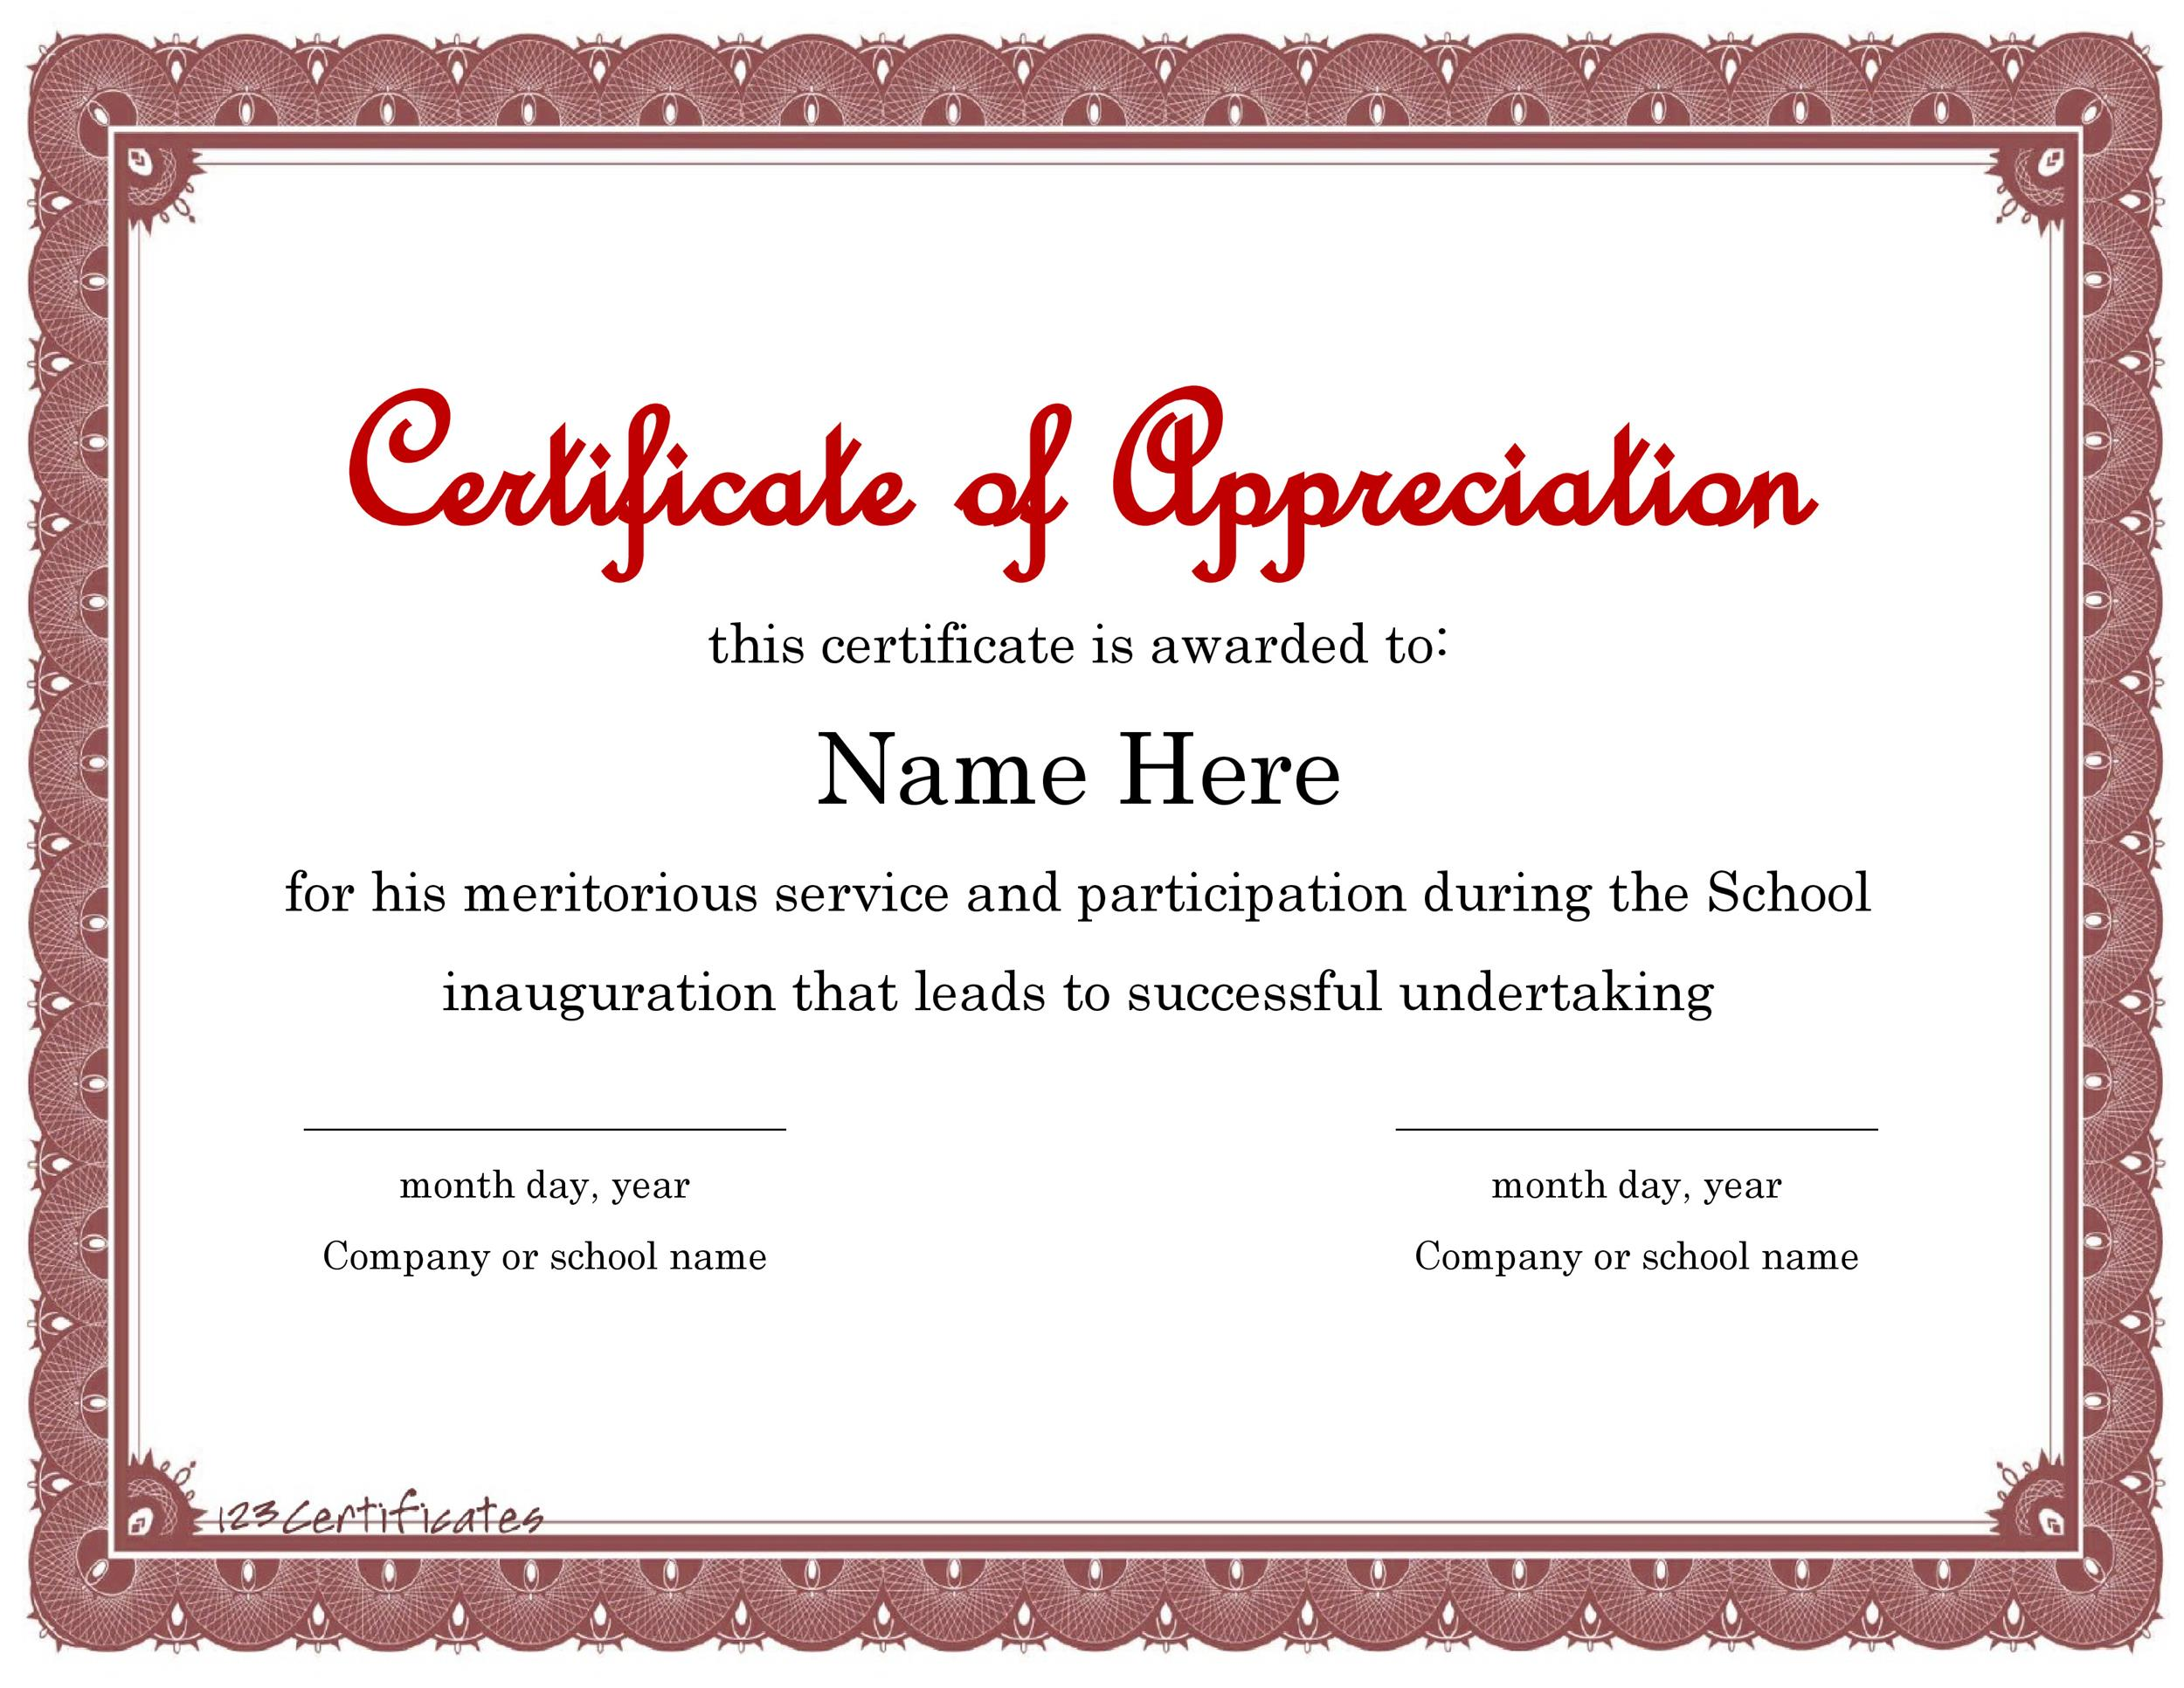 30 free certificate of appreciation templates and letters printable certificate of appreciation 01 yelopaper Image collections